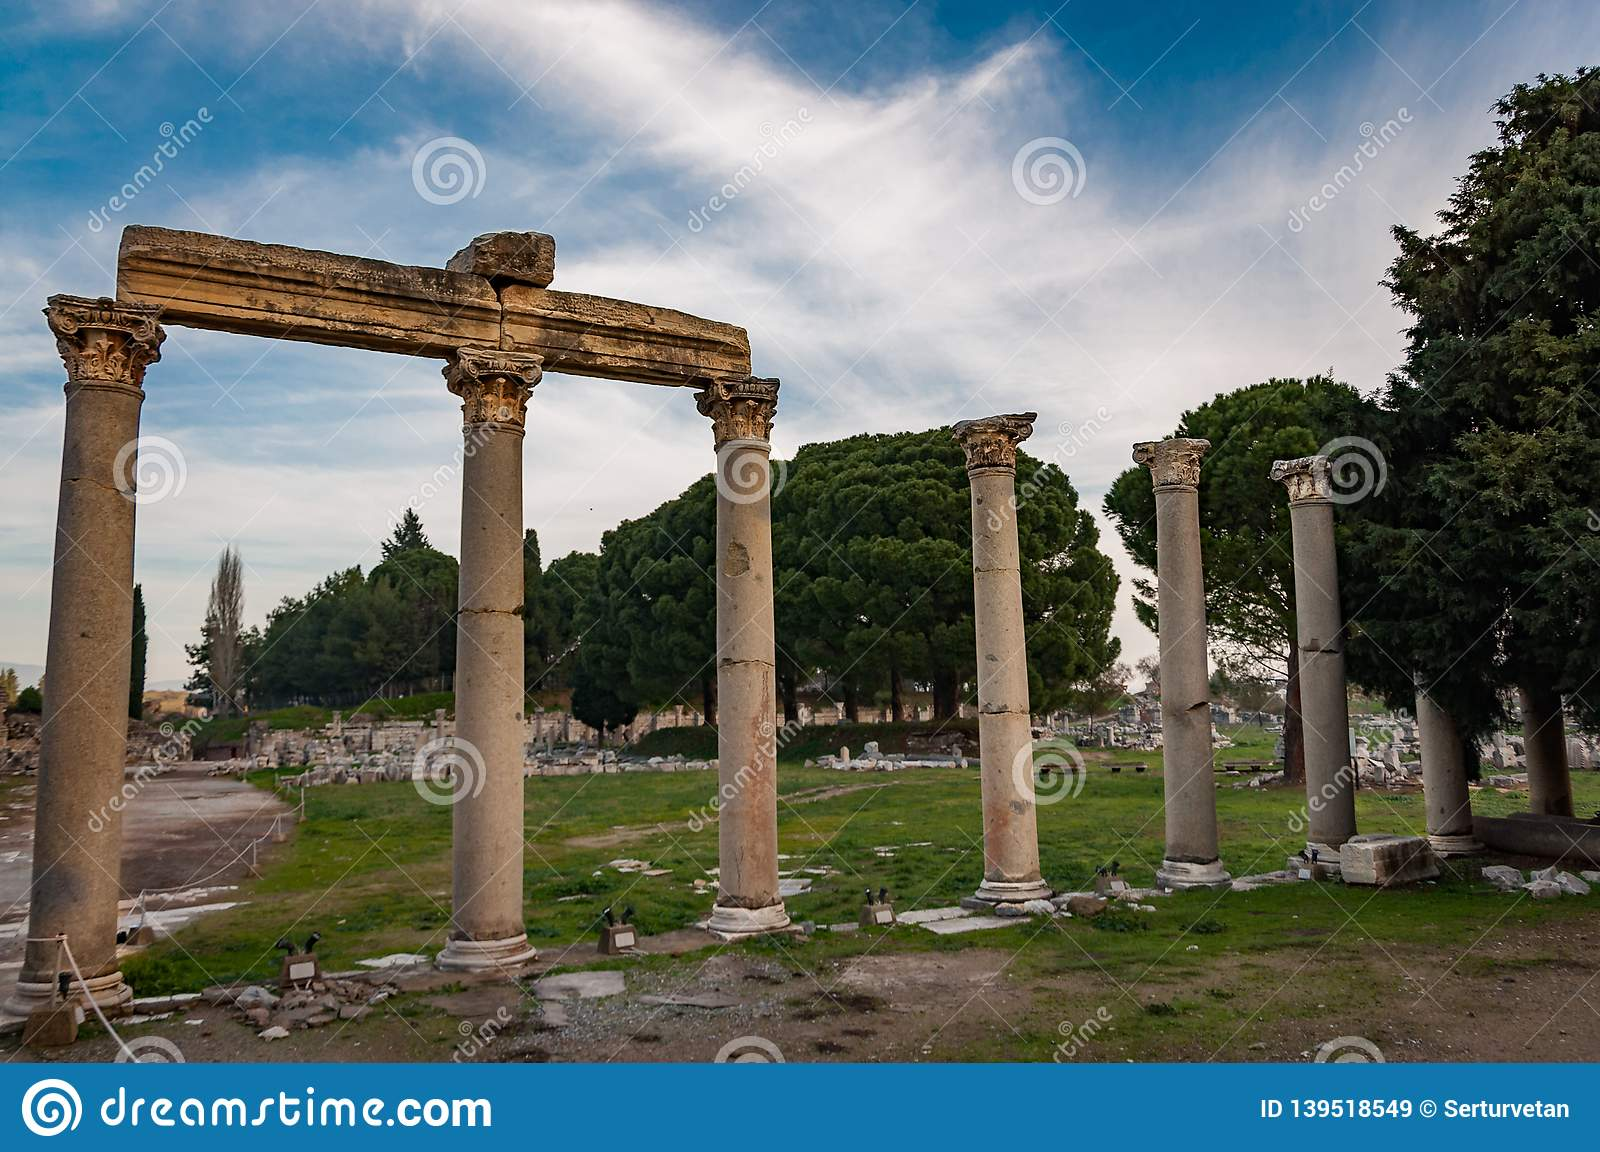 Part of temple in Ephesus, Turkey. The ancient city is listed as a UNESCO World Heritage Site